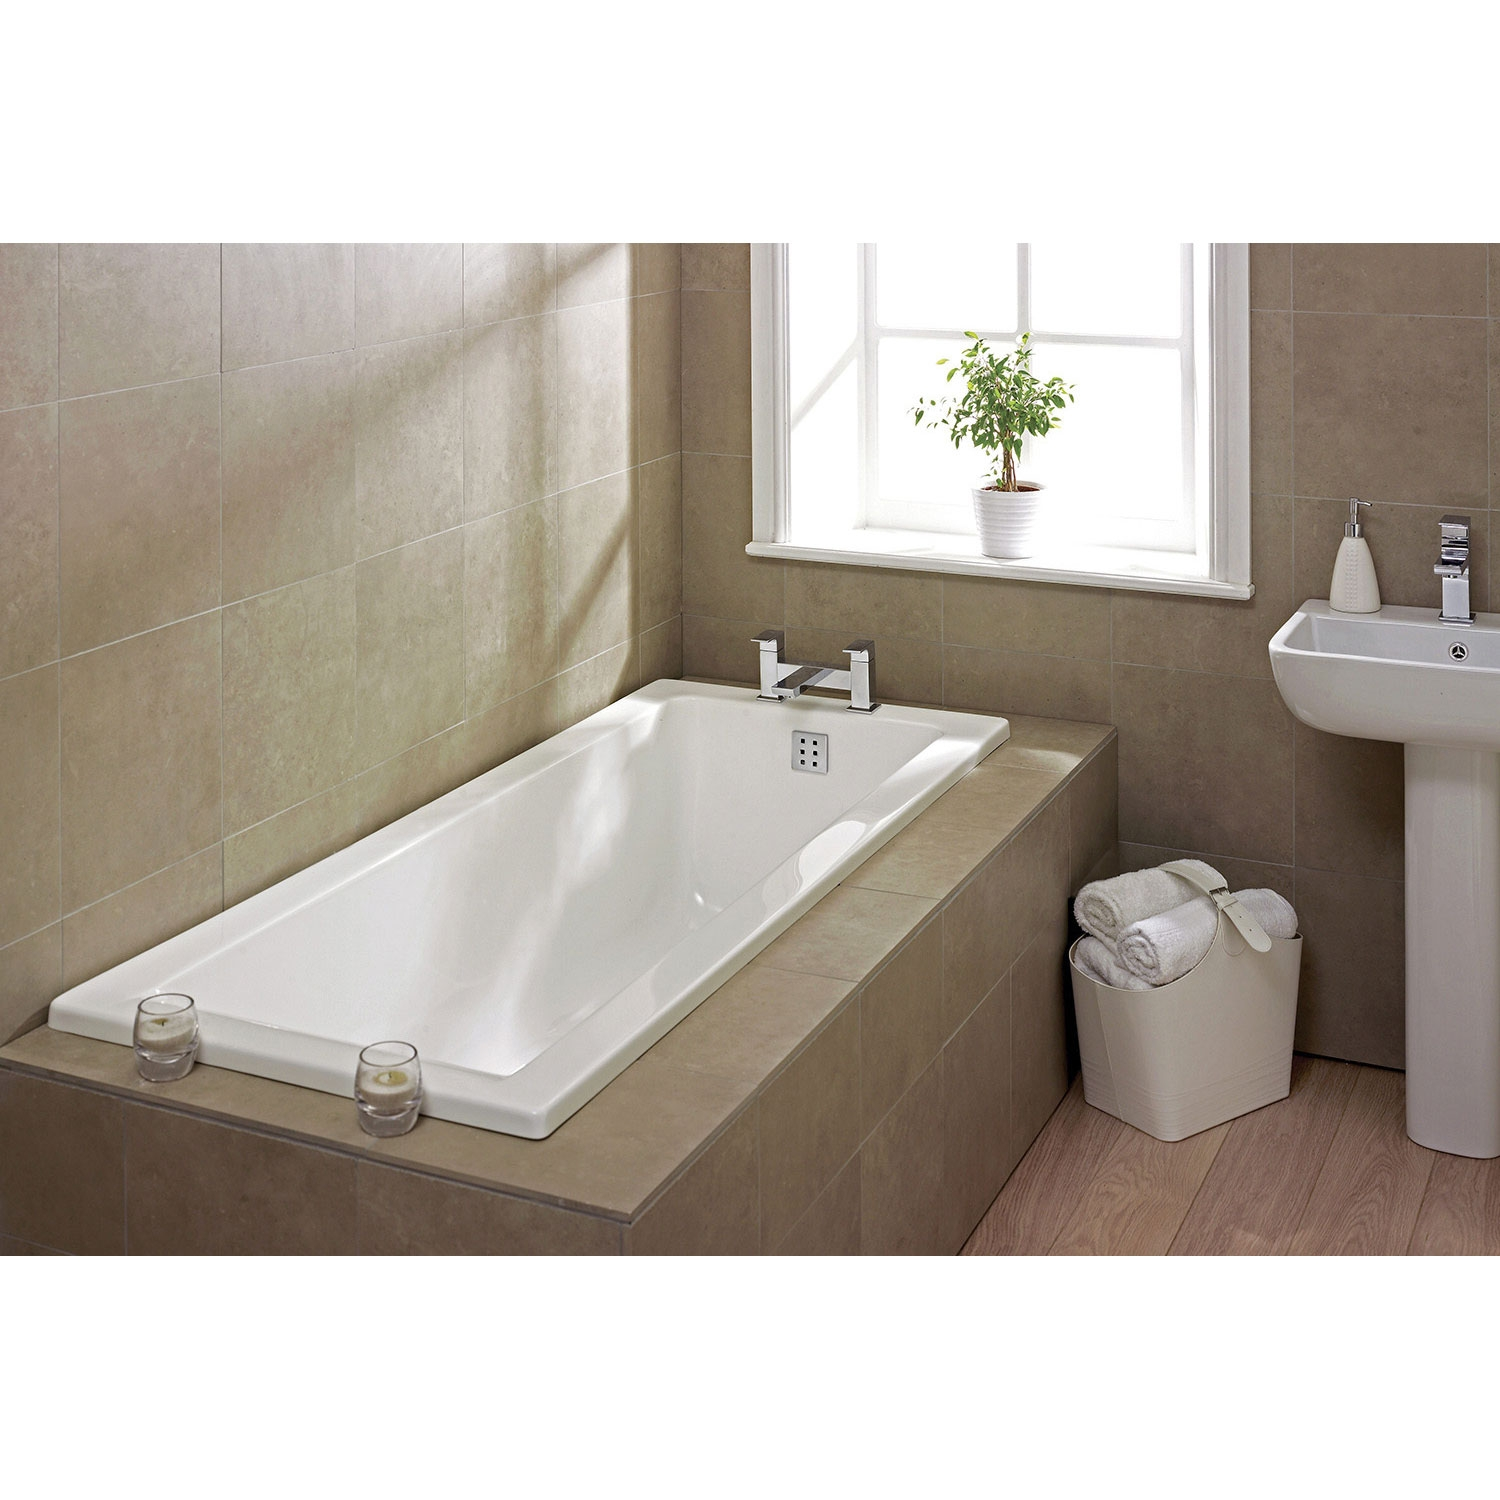 Verona Atlanta Single Ended Rectangular Tungstenite Bath 1500mm x 700mm - 0 Tap Hole